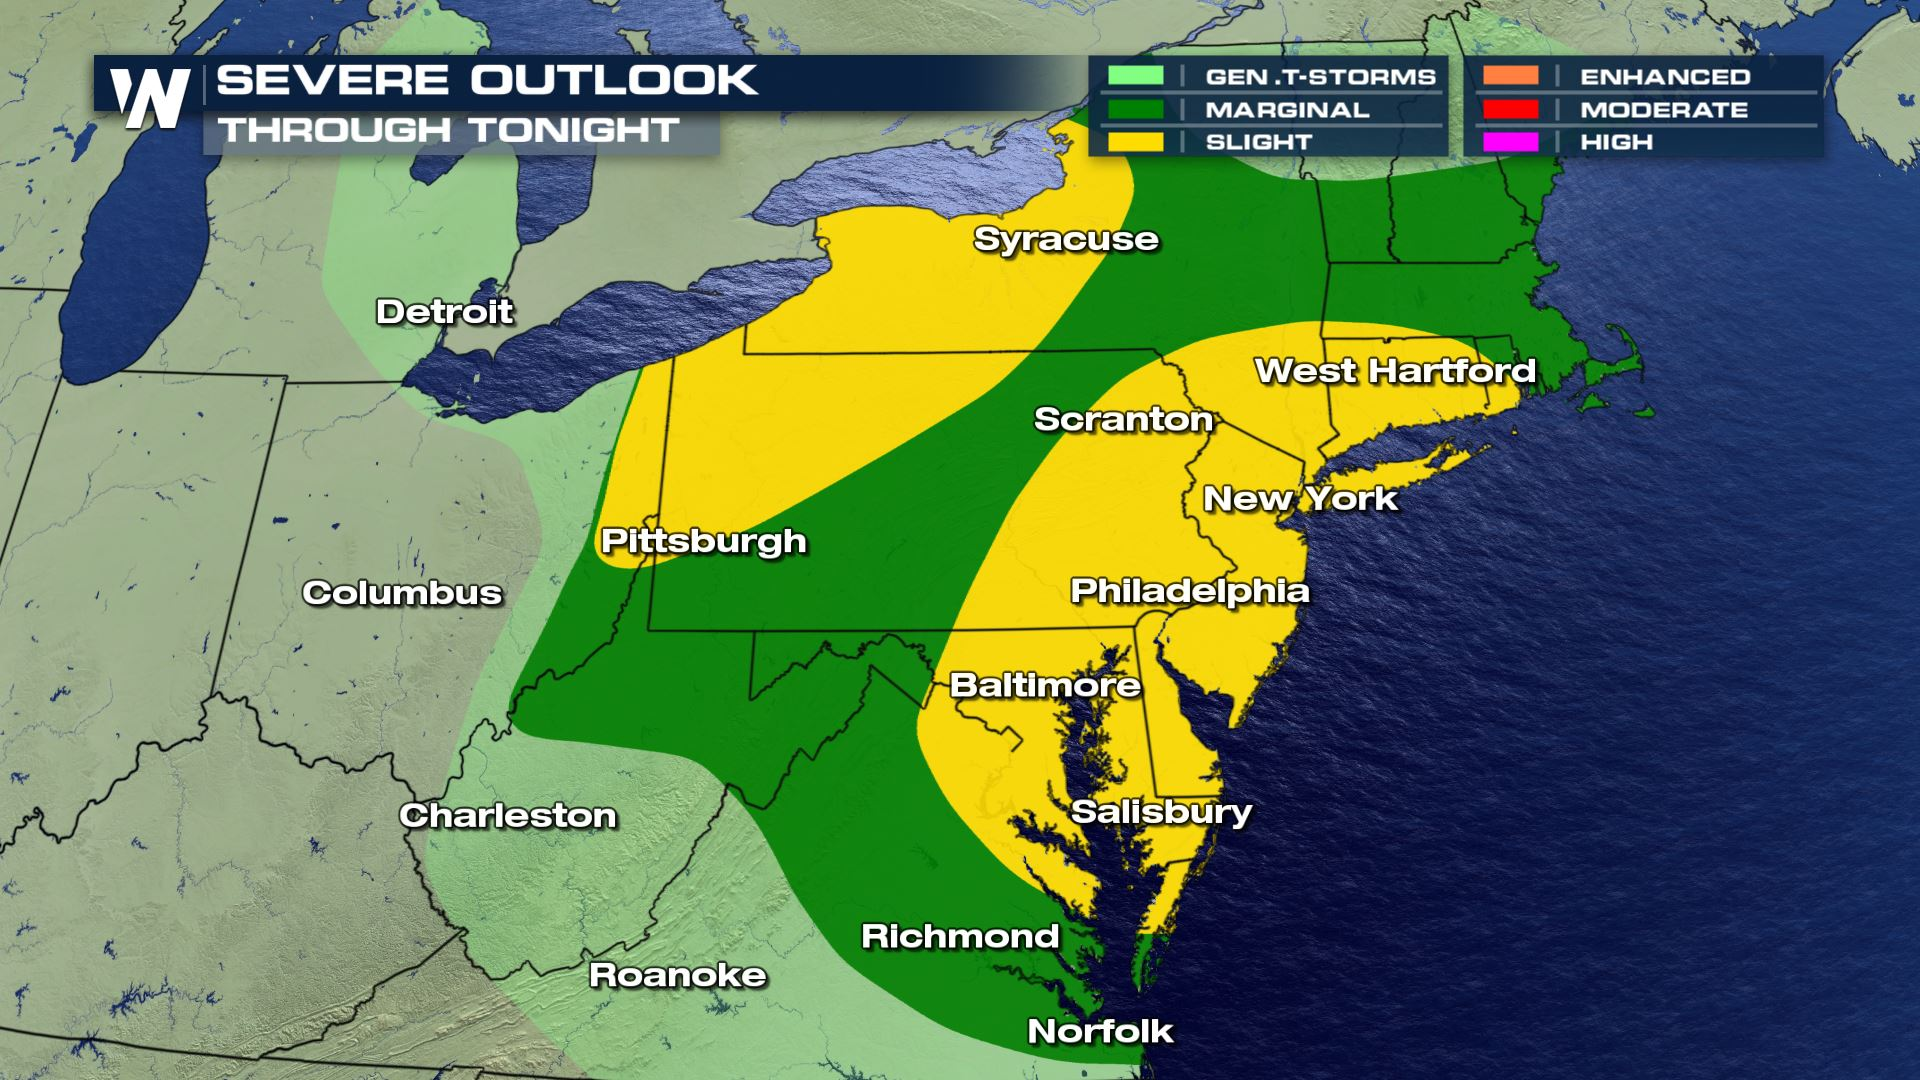 Severe Storms Possible Mid-Atlantic to Northeast Tonight